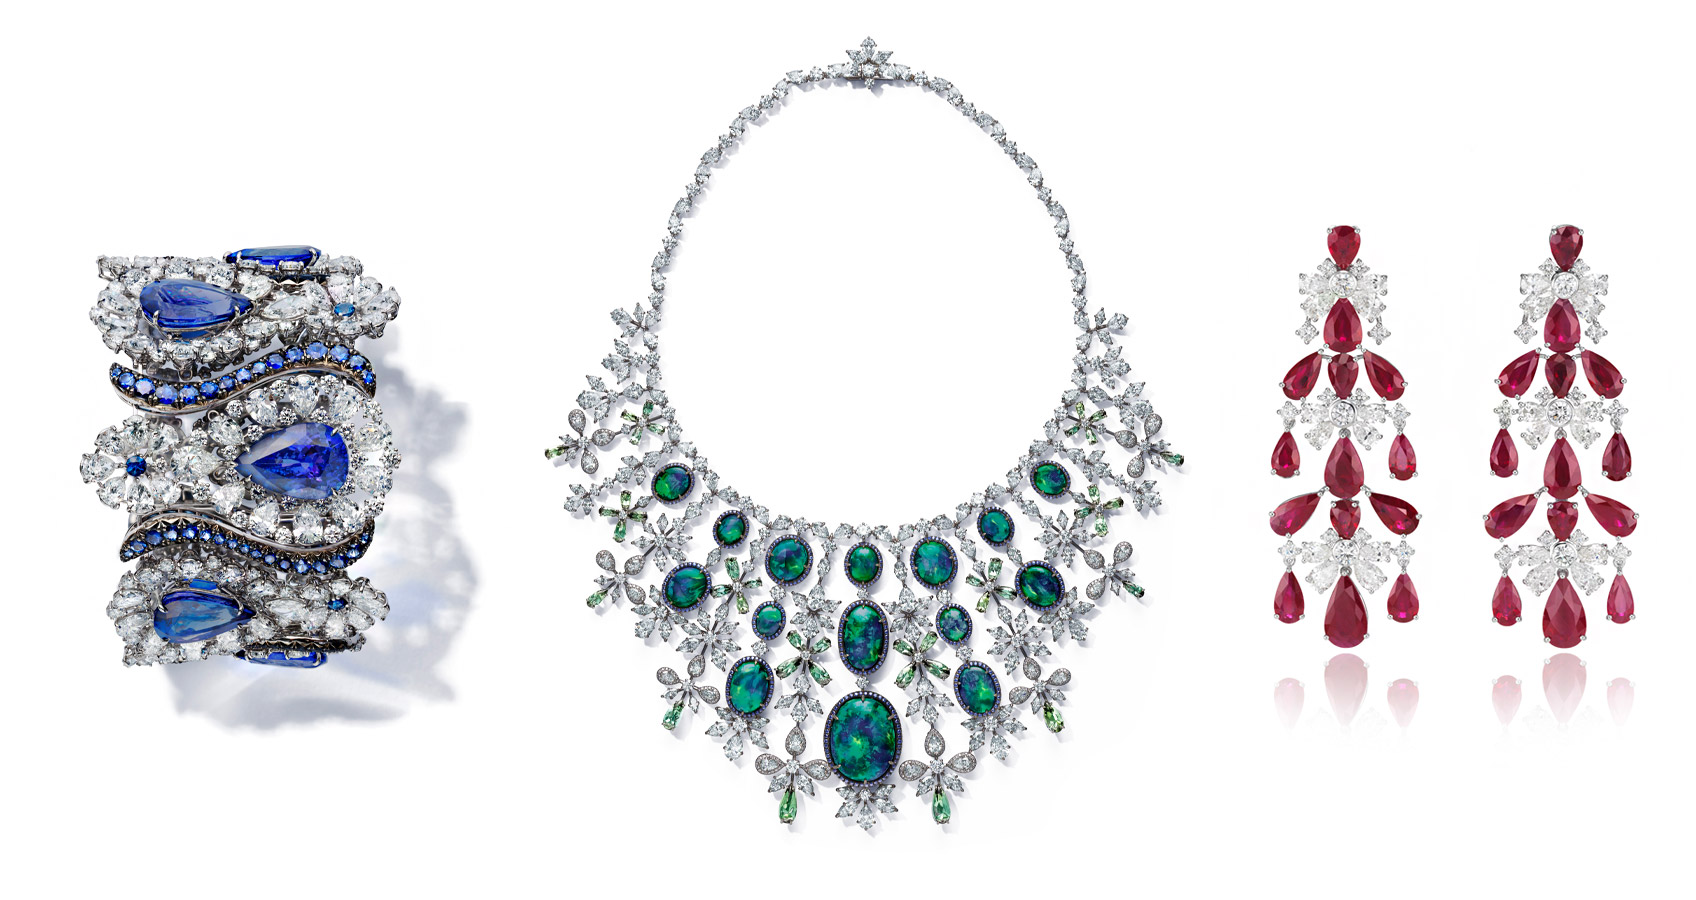 Chopard Red Carpet 2017 collection